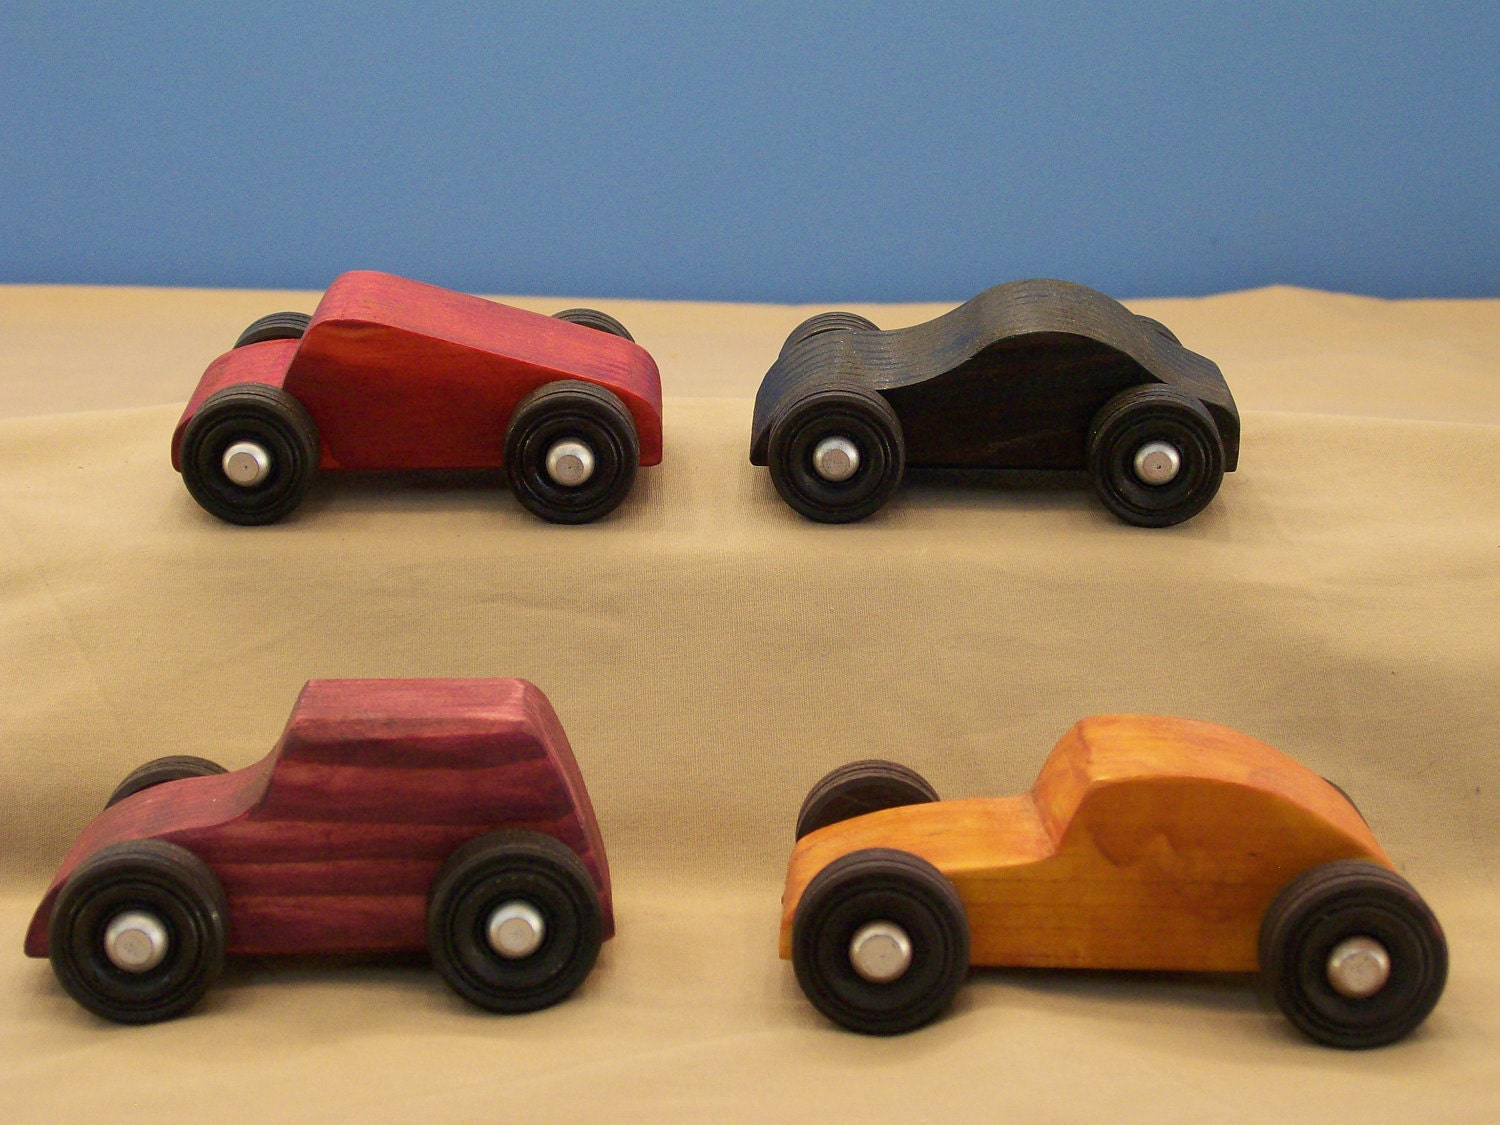 Small Toy Cars : Wood toy cars small toys wooden